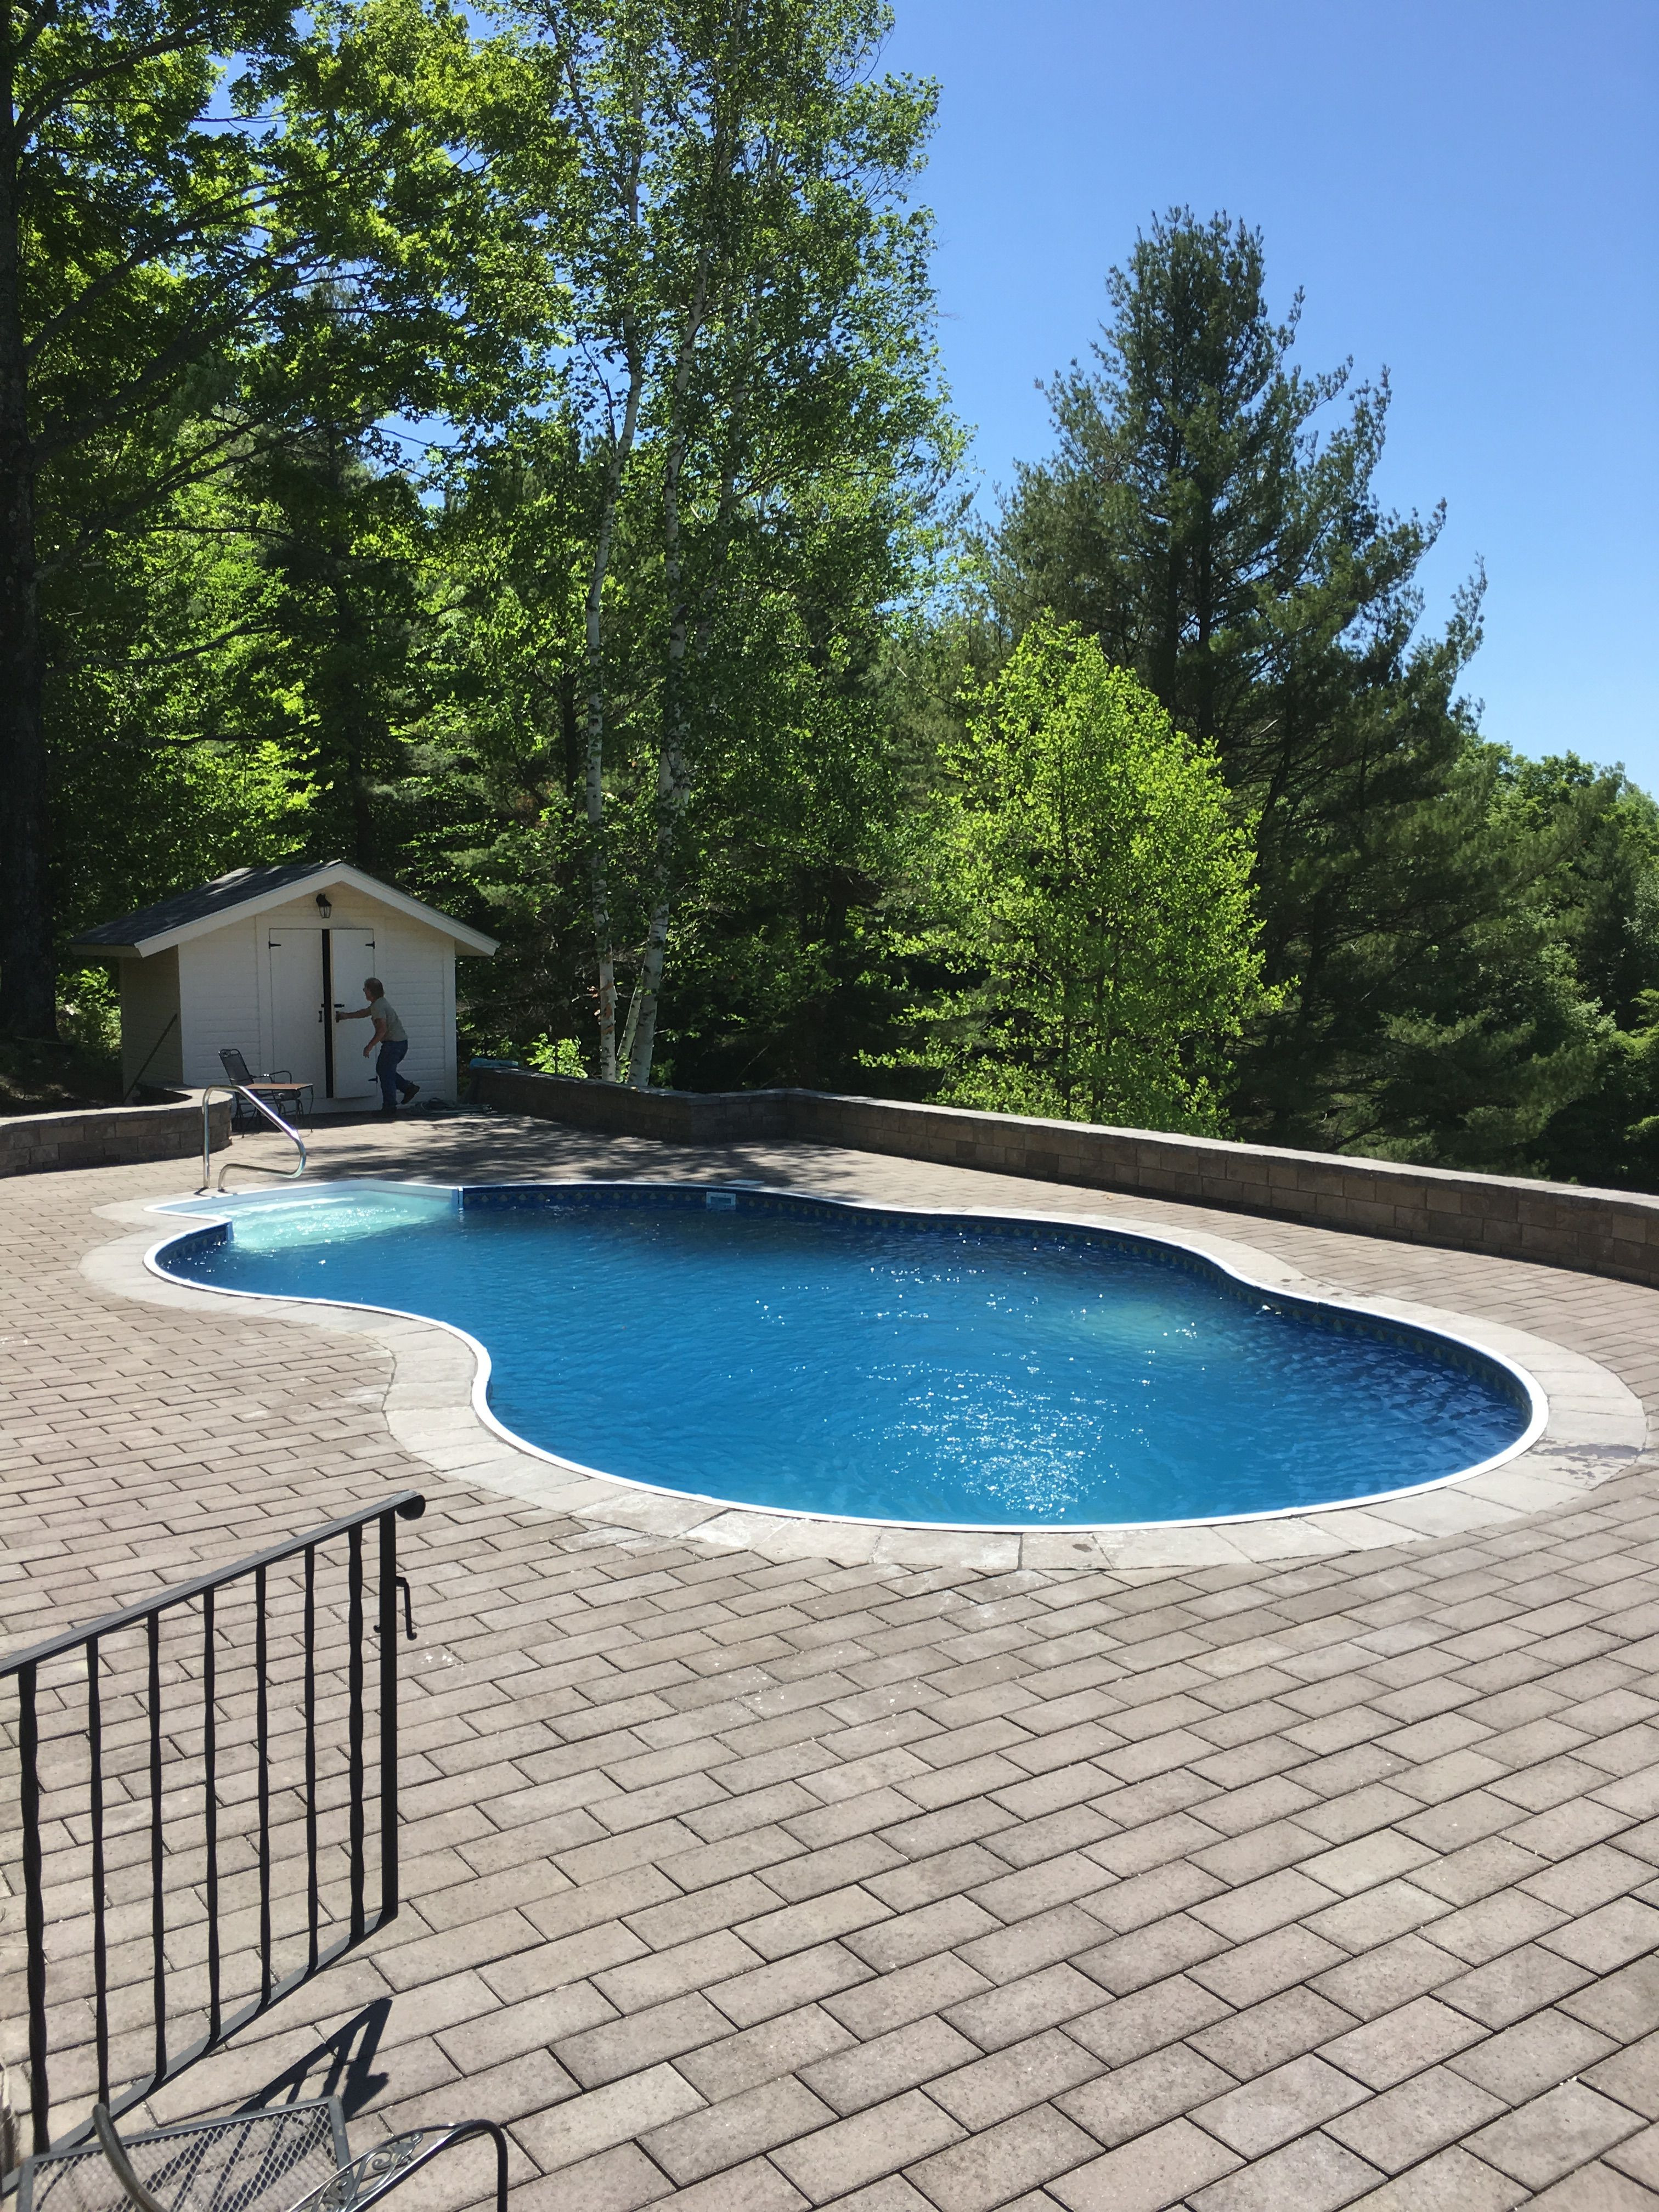 Radiant Metric Pool Cost Awesome Radiant Inground Freeform with Walk In Steps